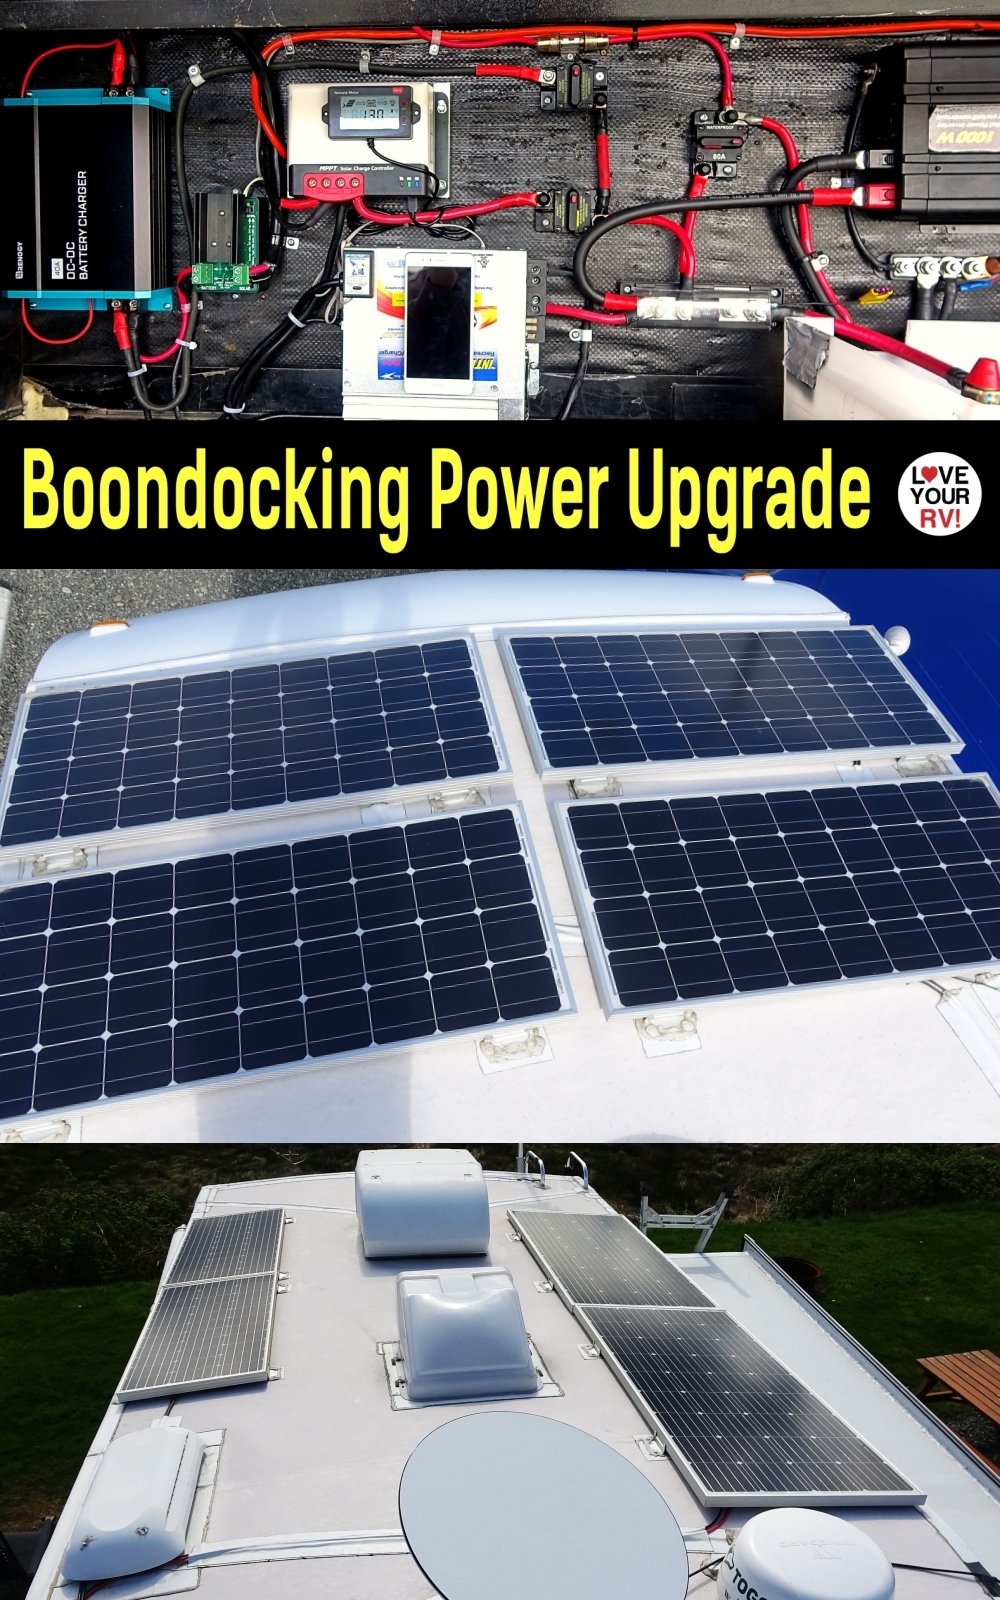 RV Solar Power Upgrade - Adding Separate 500W Ground Panel Array